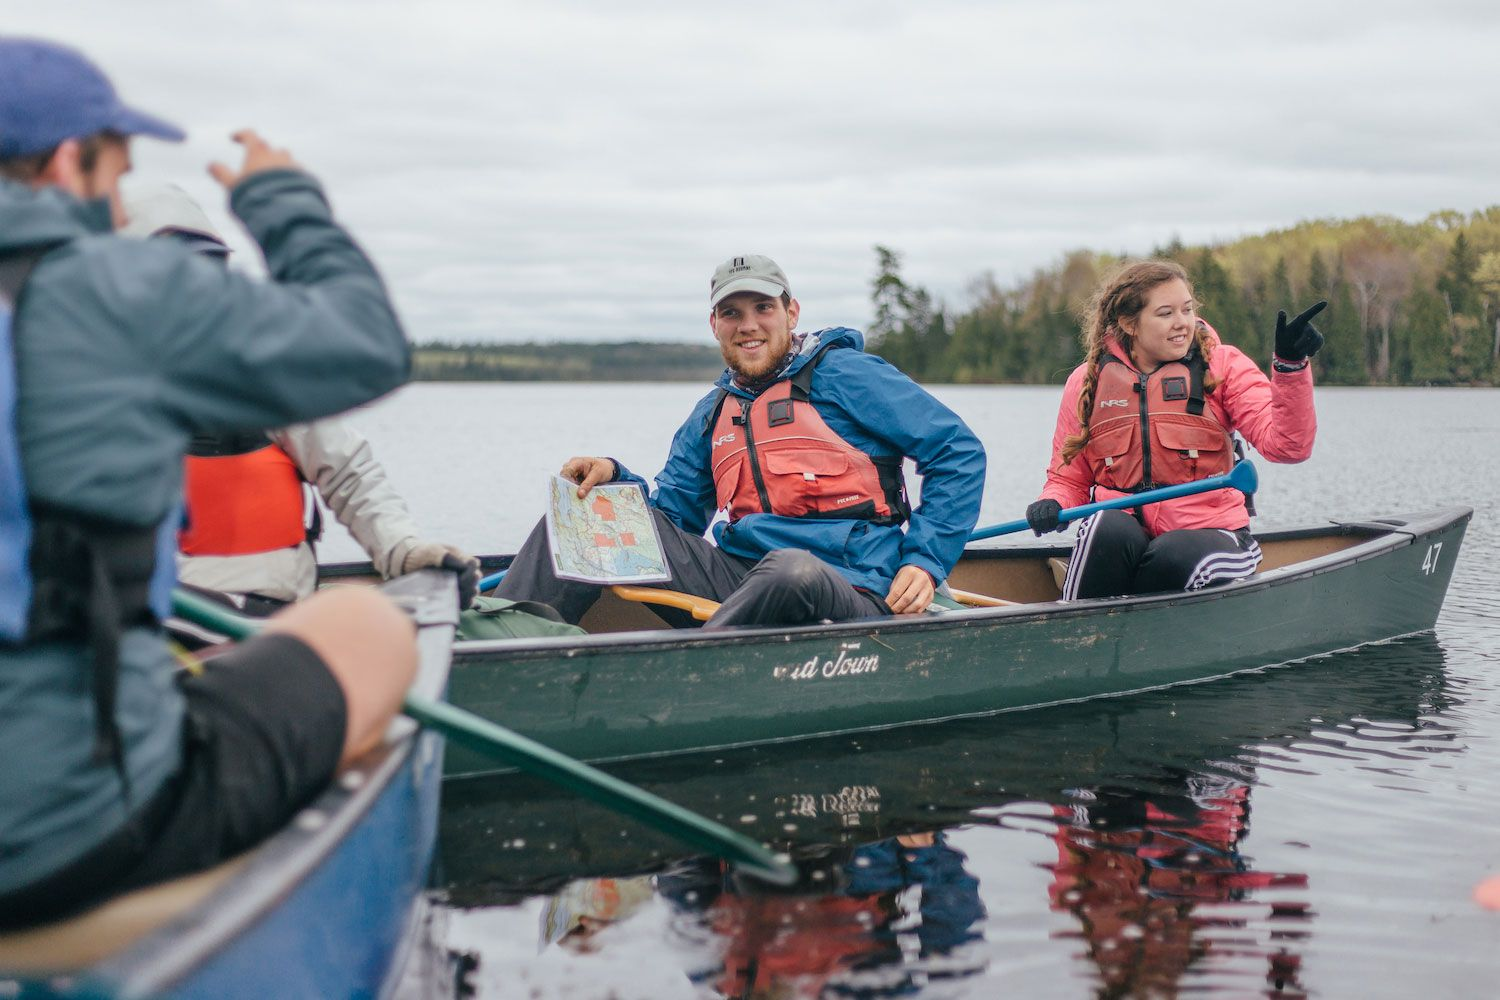 Our youngest campers, up to 8th grade, stay onsite for their wilderness trips, called camp outs. They canoe or backpack to their HoneyRock-owned campsites.